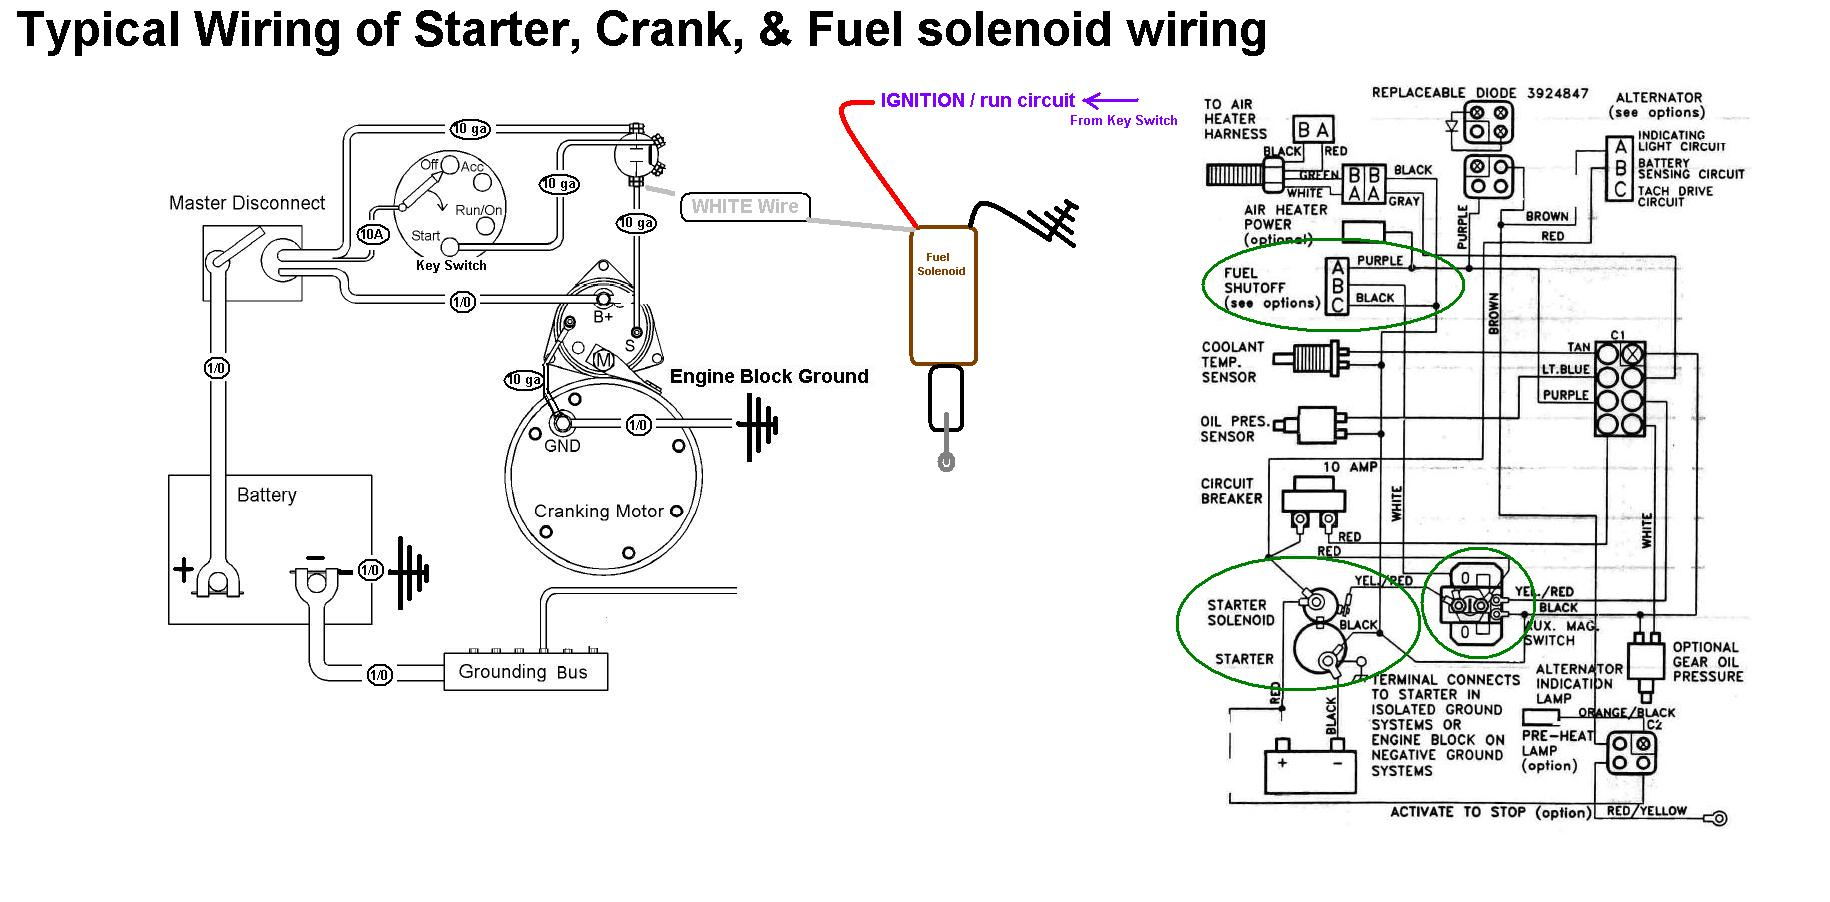 Starter Crank Fuel Shutoff Solenoid Wiring on john deere ignition switch test